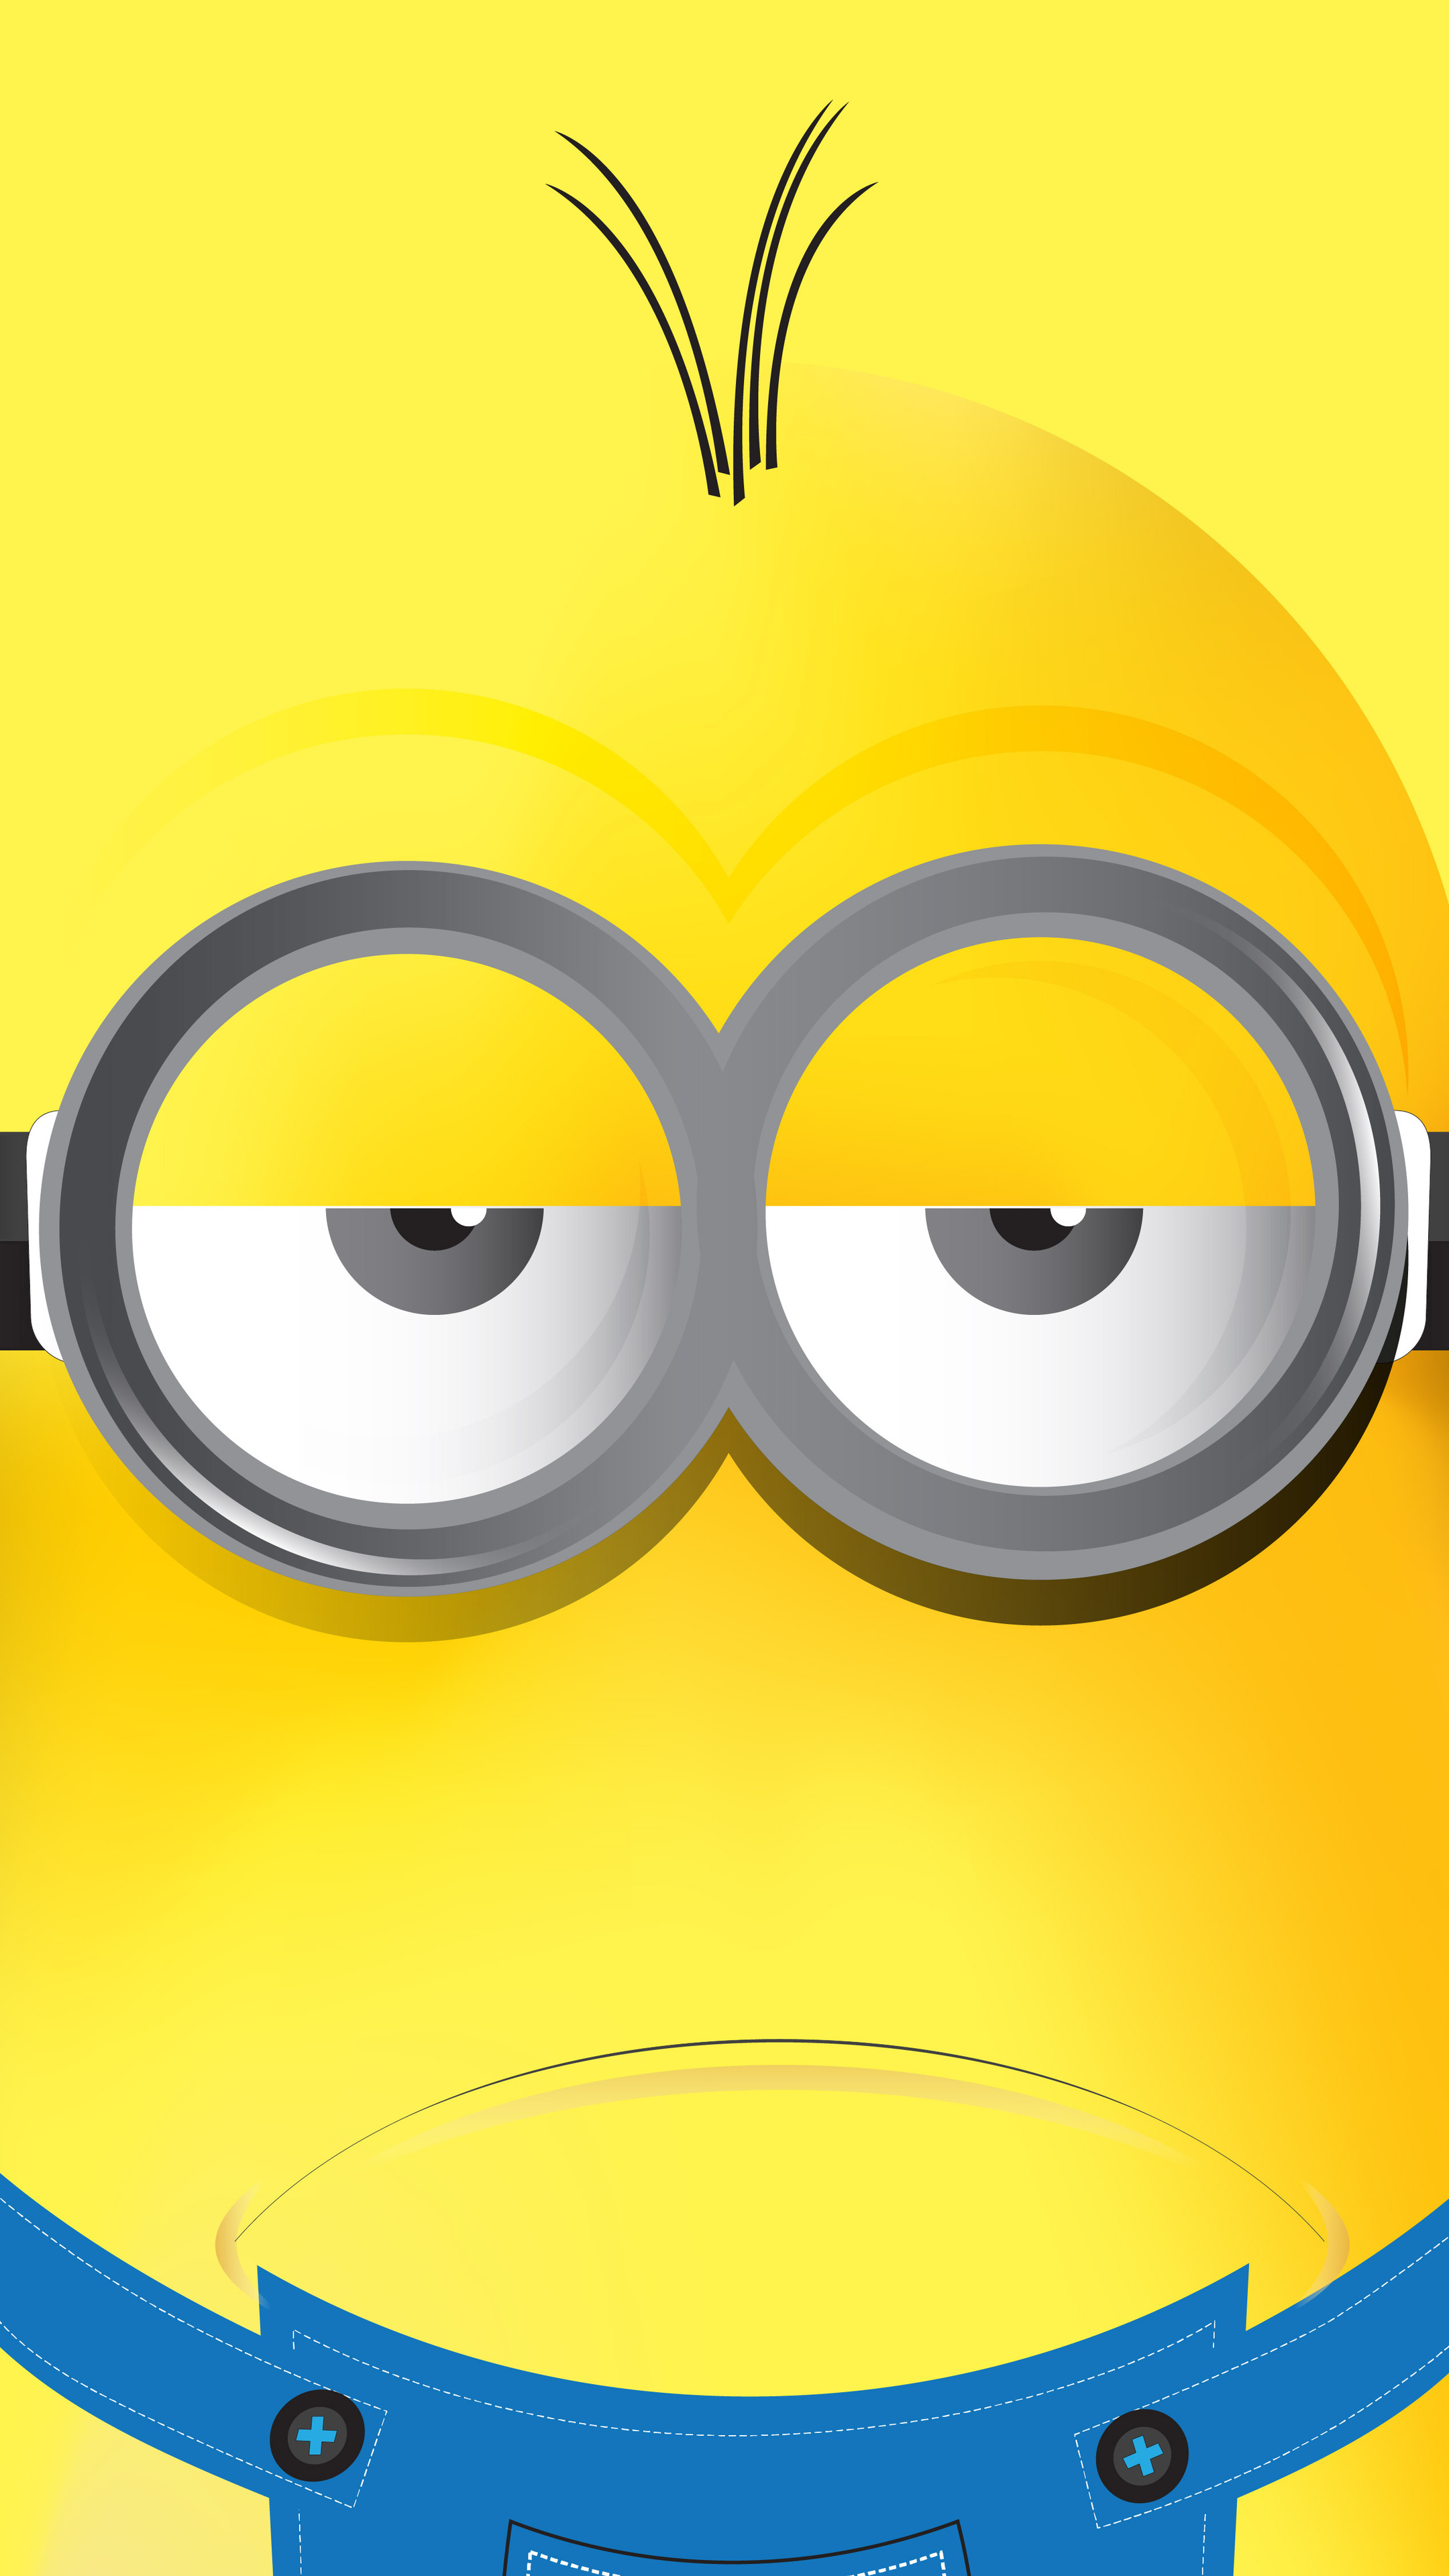 minions-8k-background-do.jpg